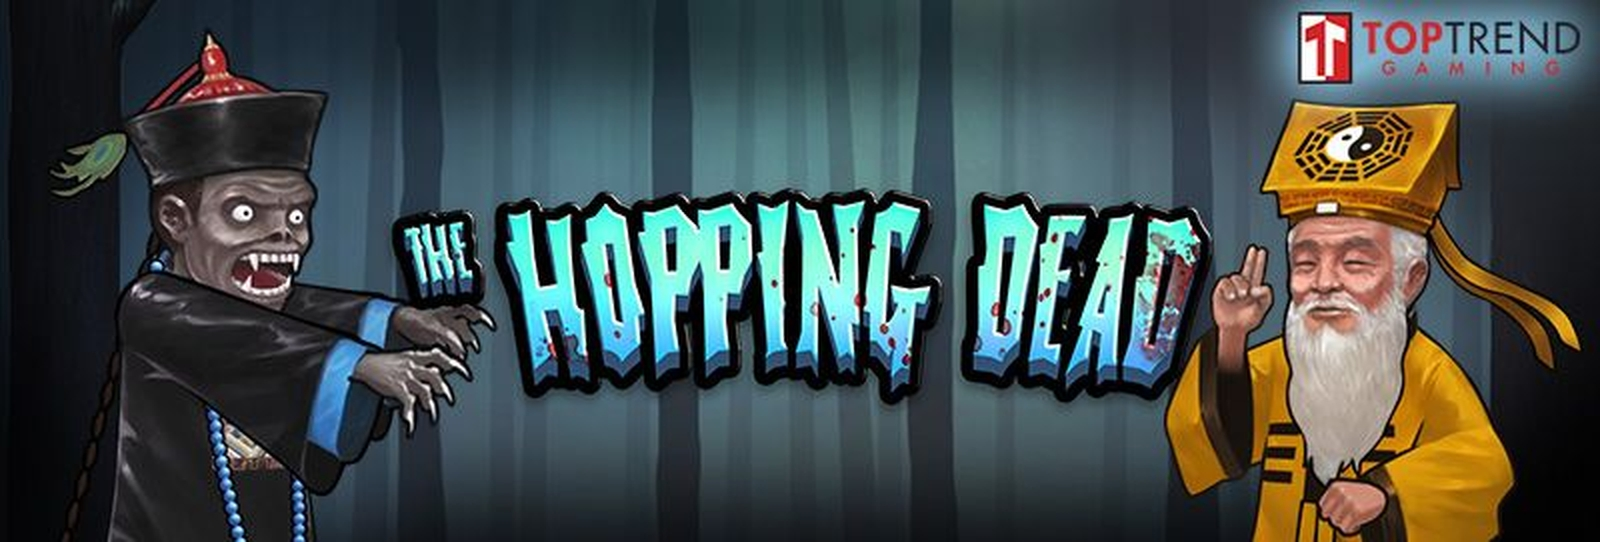 The The Hopping Dead Online Slot Demo Game by Top Trend Gaming